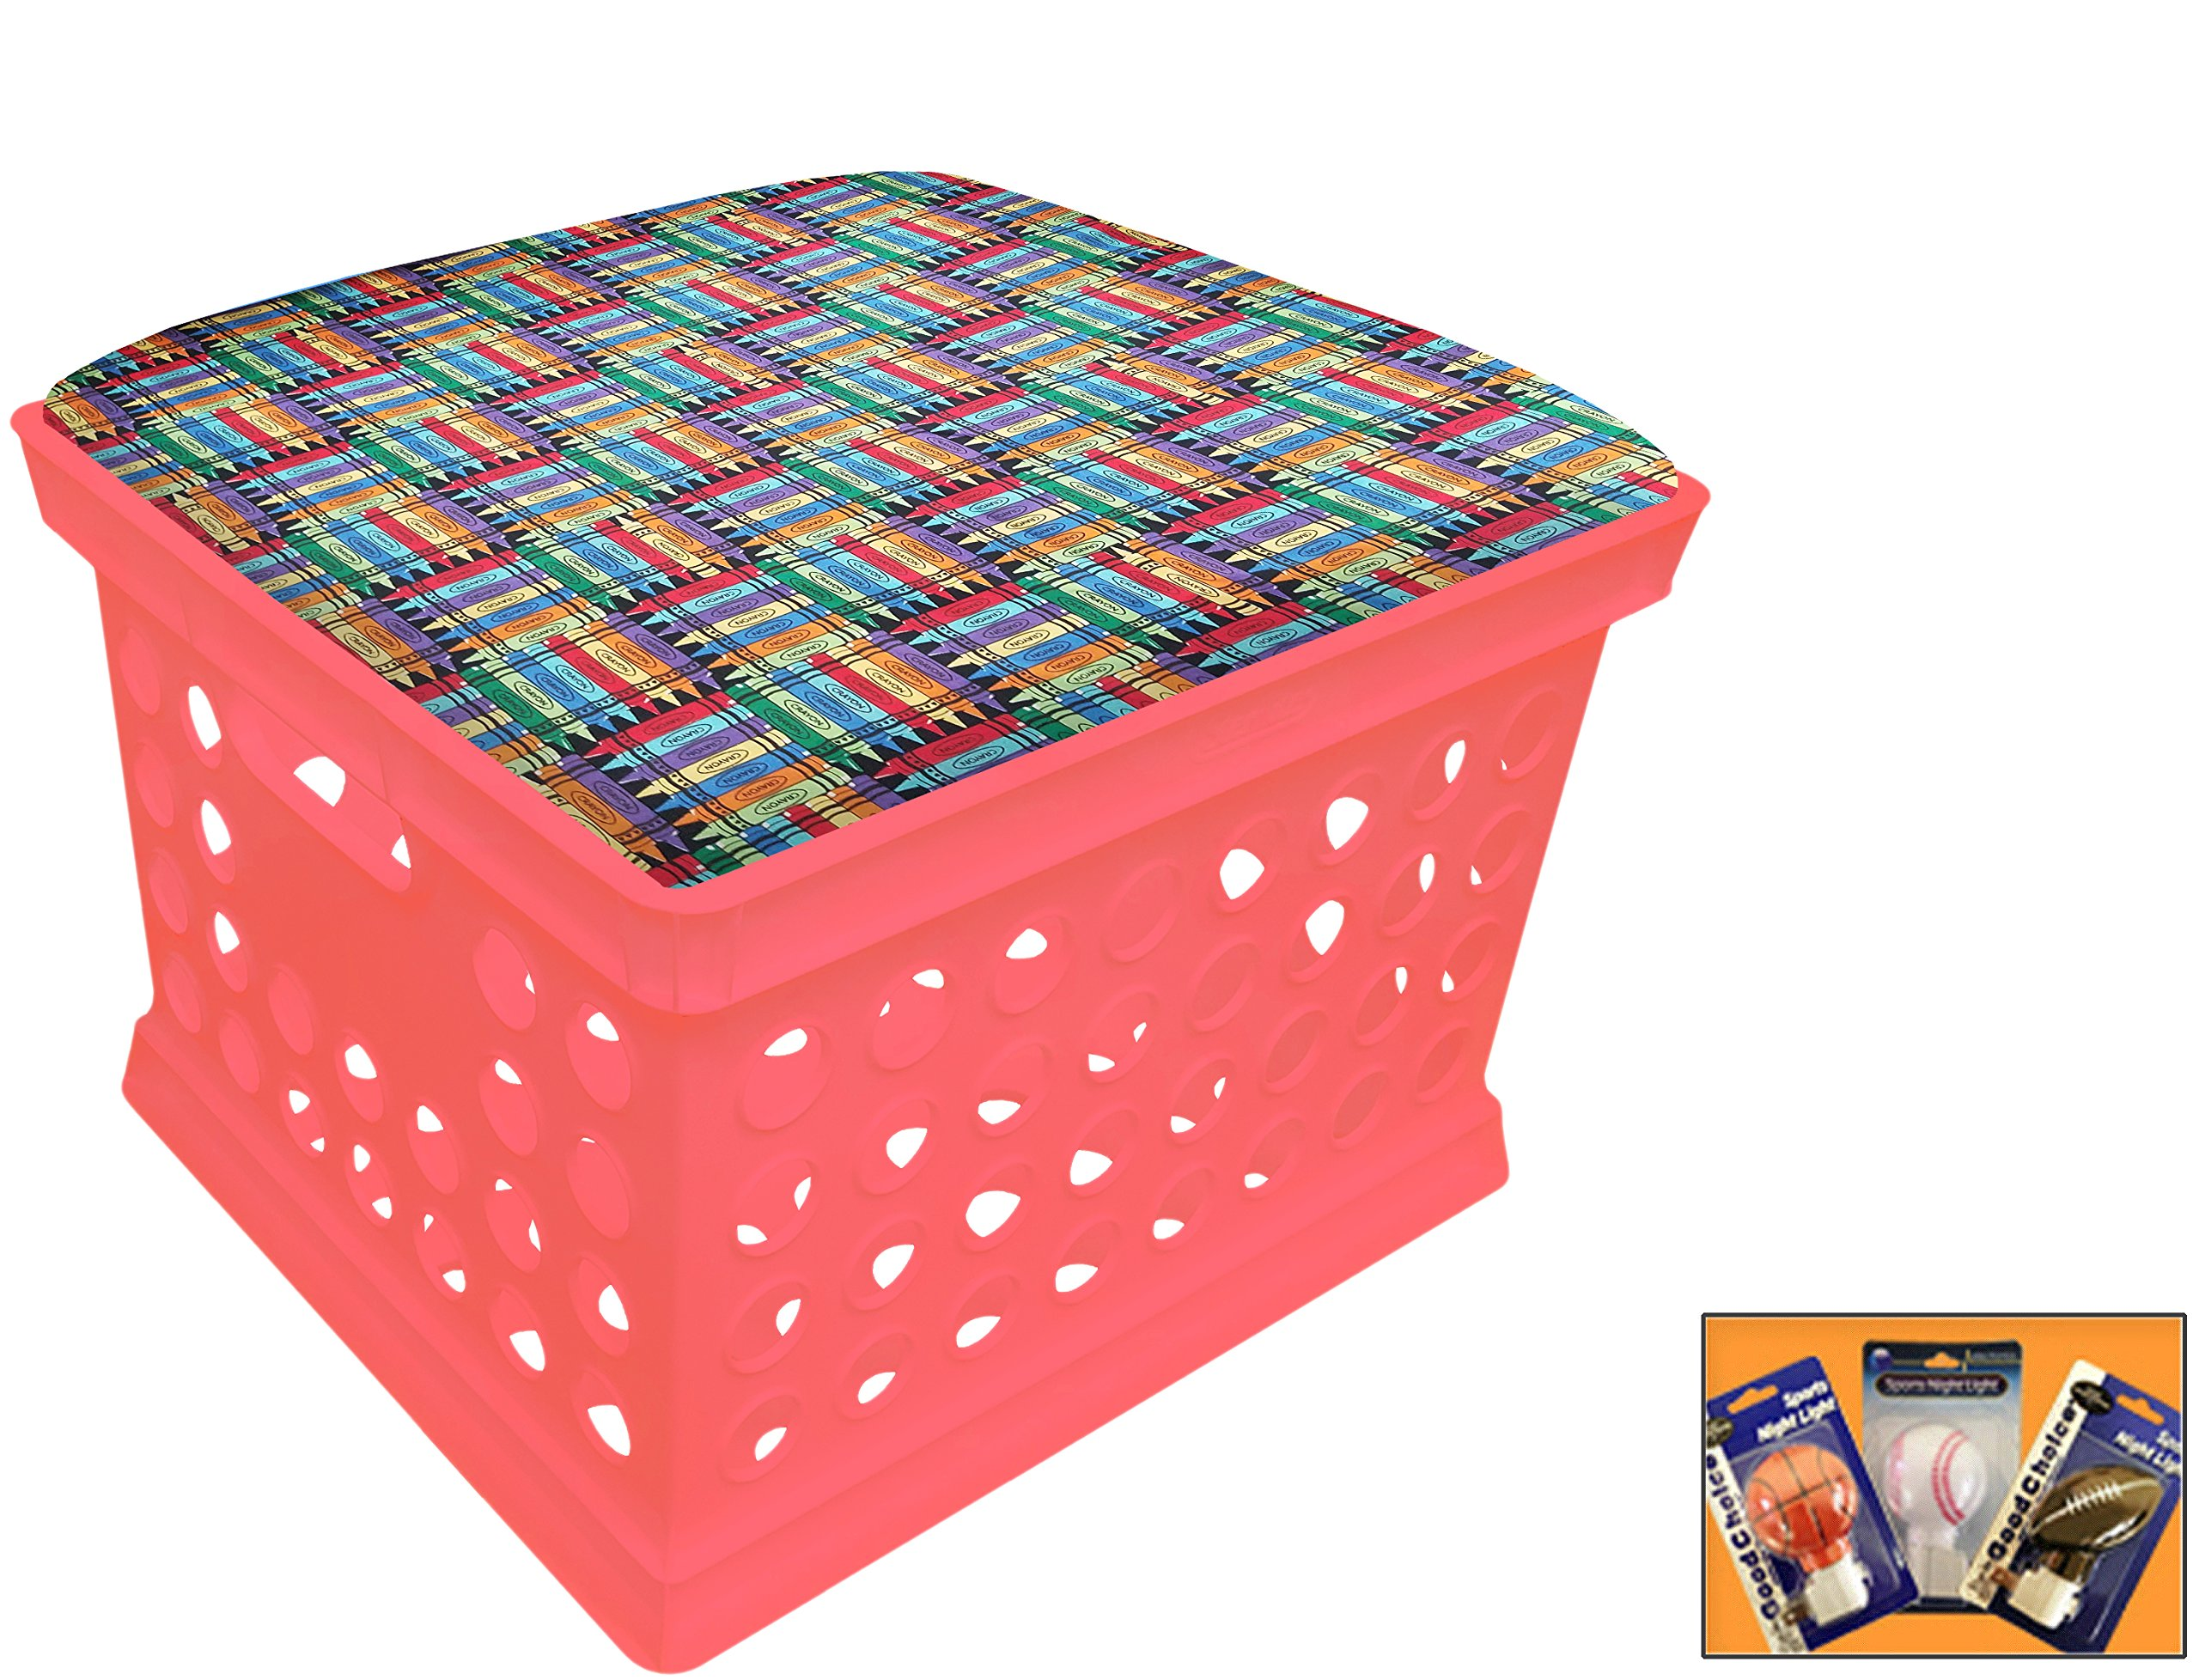 Pink Utility Crate Storage Container Ottoman Bench Stool for Office/Home/School/Preschools with Your Choice of Seat Cushion Theme! (Crayons)